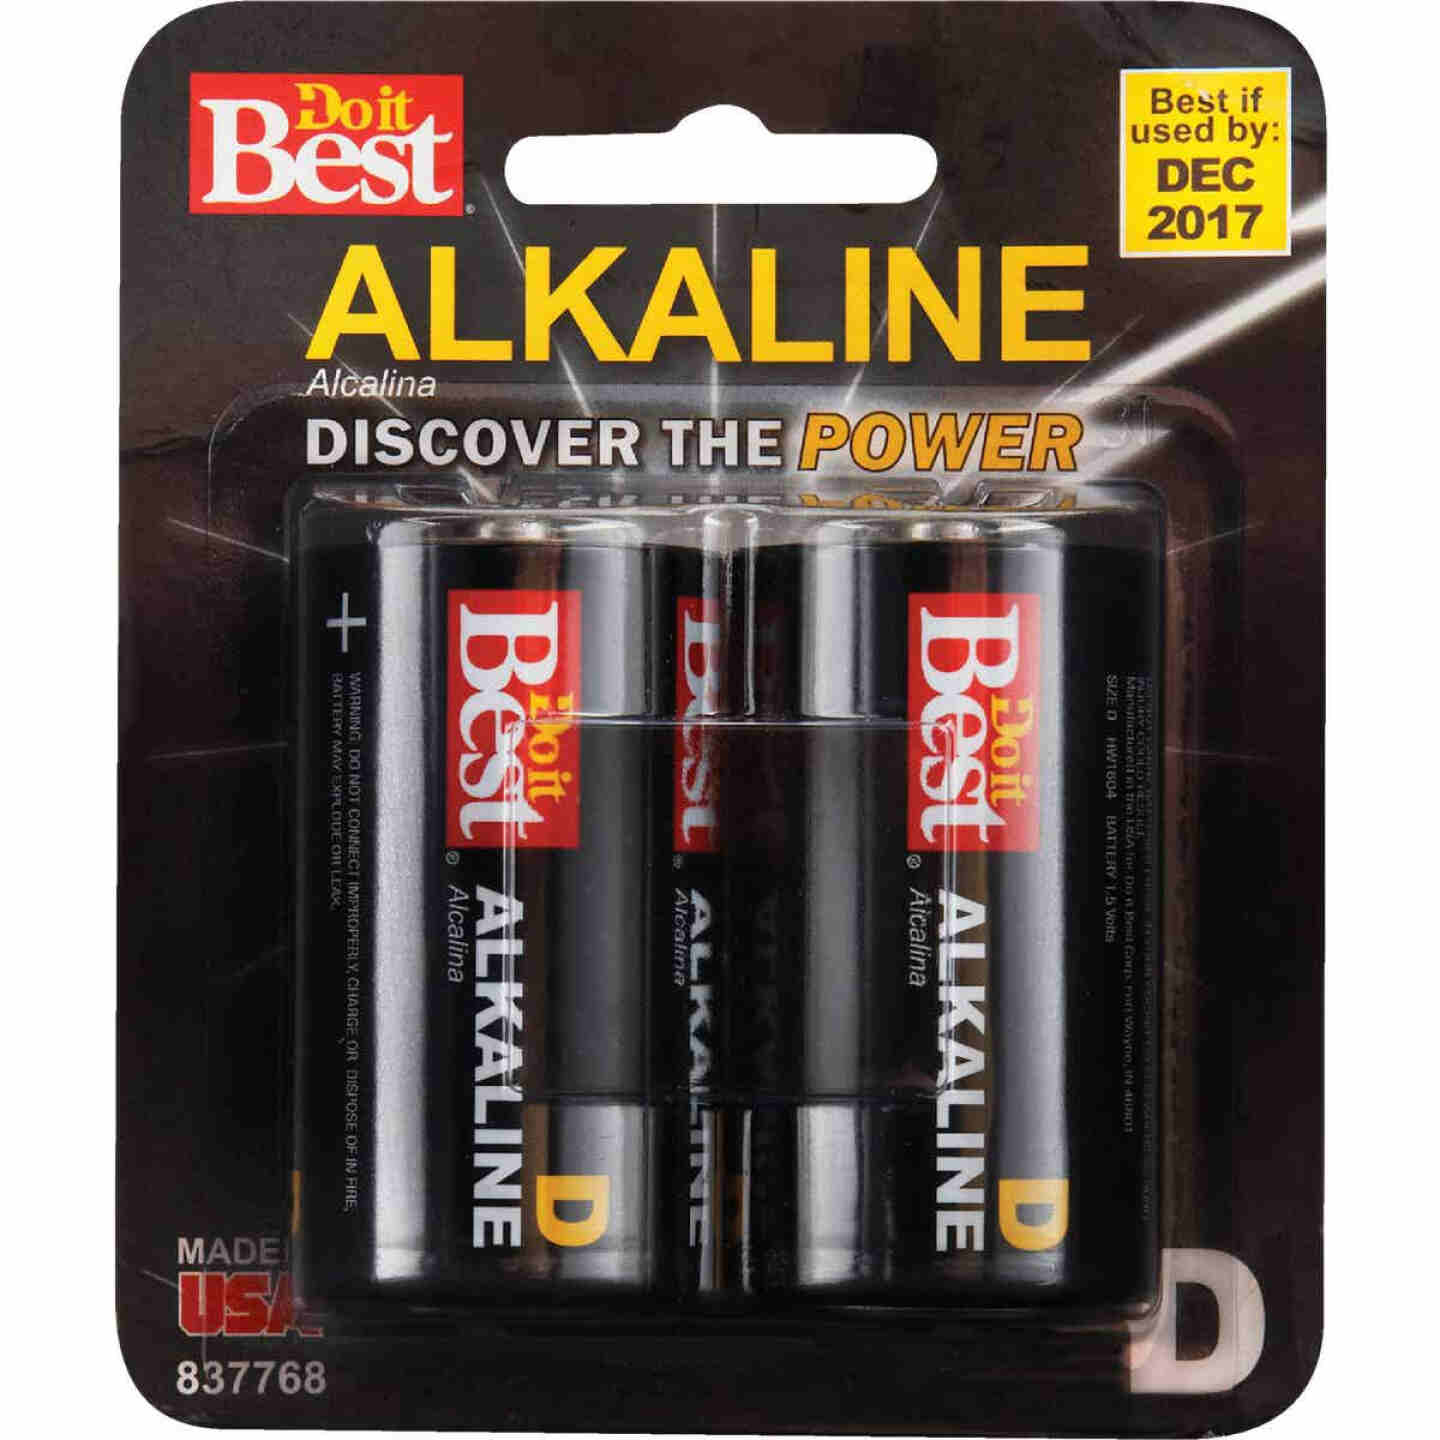 Do it Best D Alkaline Battery (2-Pack) Image 2